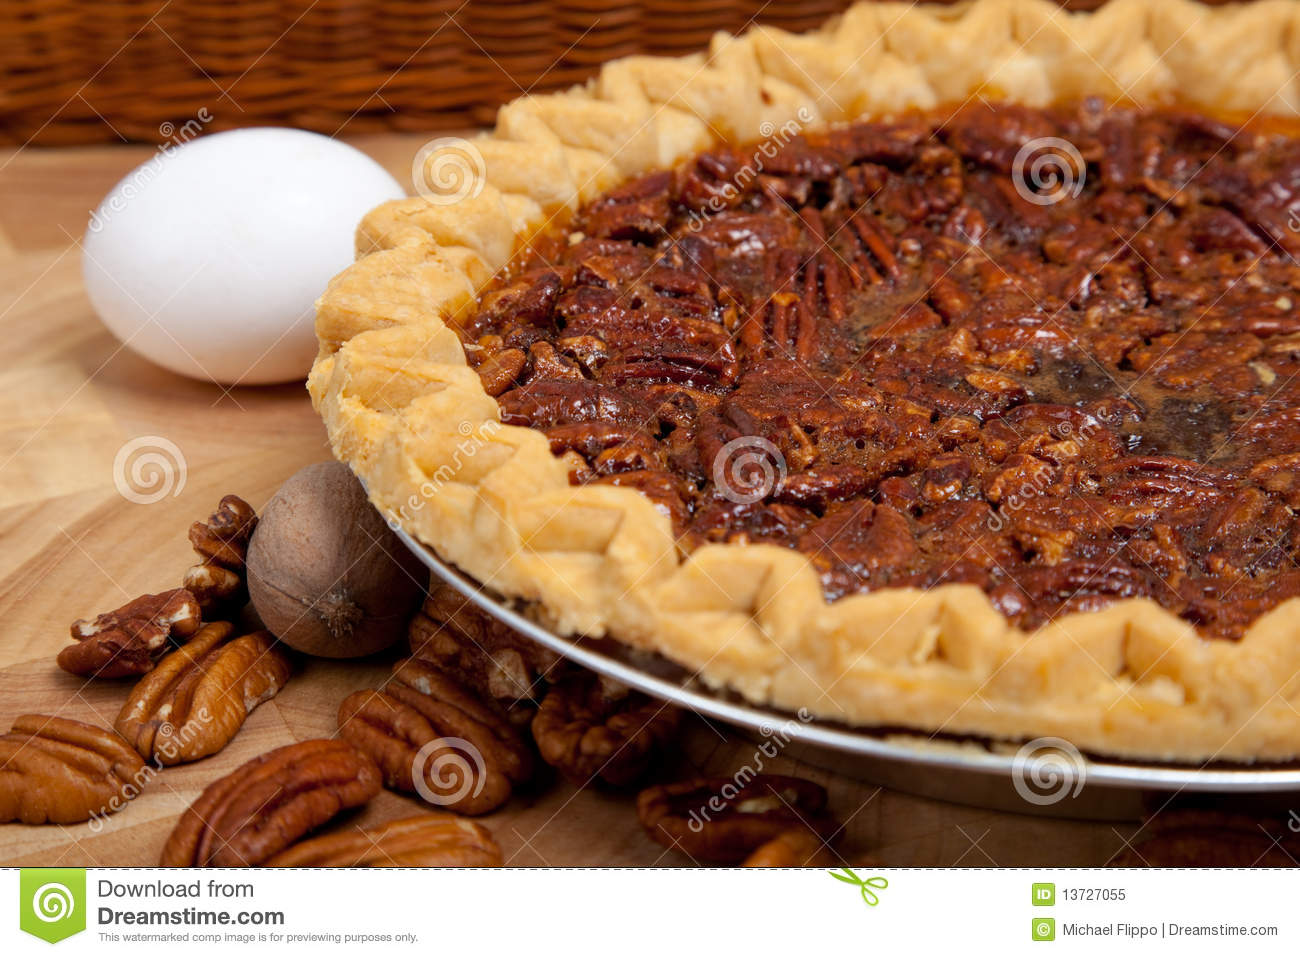 Homemade Pecan Pie With Ingredients Royalty Free Stock Photo ...